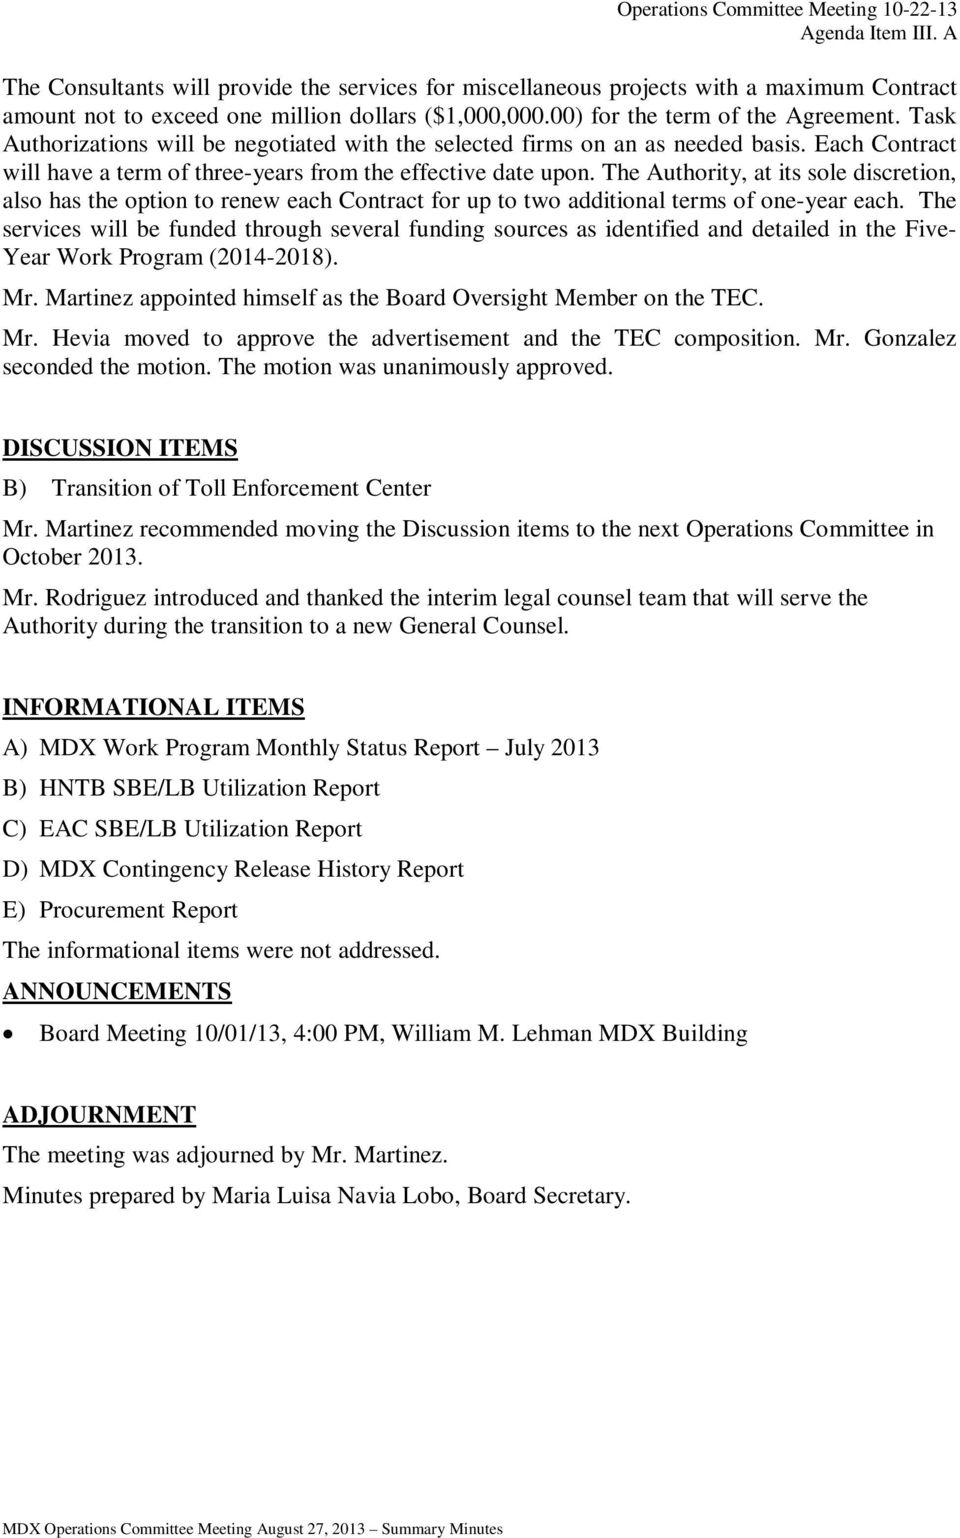 MIAMI-DADE EXPRESSWAY AUTHORITY (MDX) OPERATIONS COMMITTEE